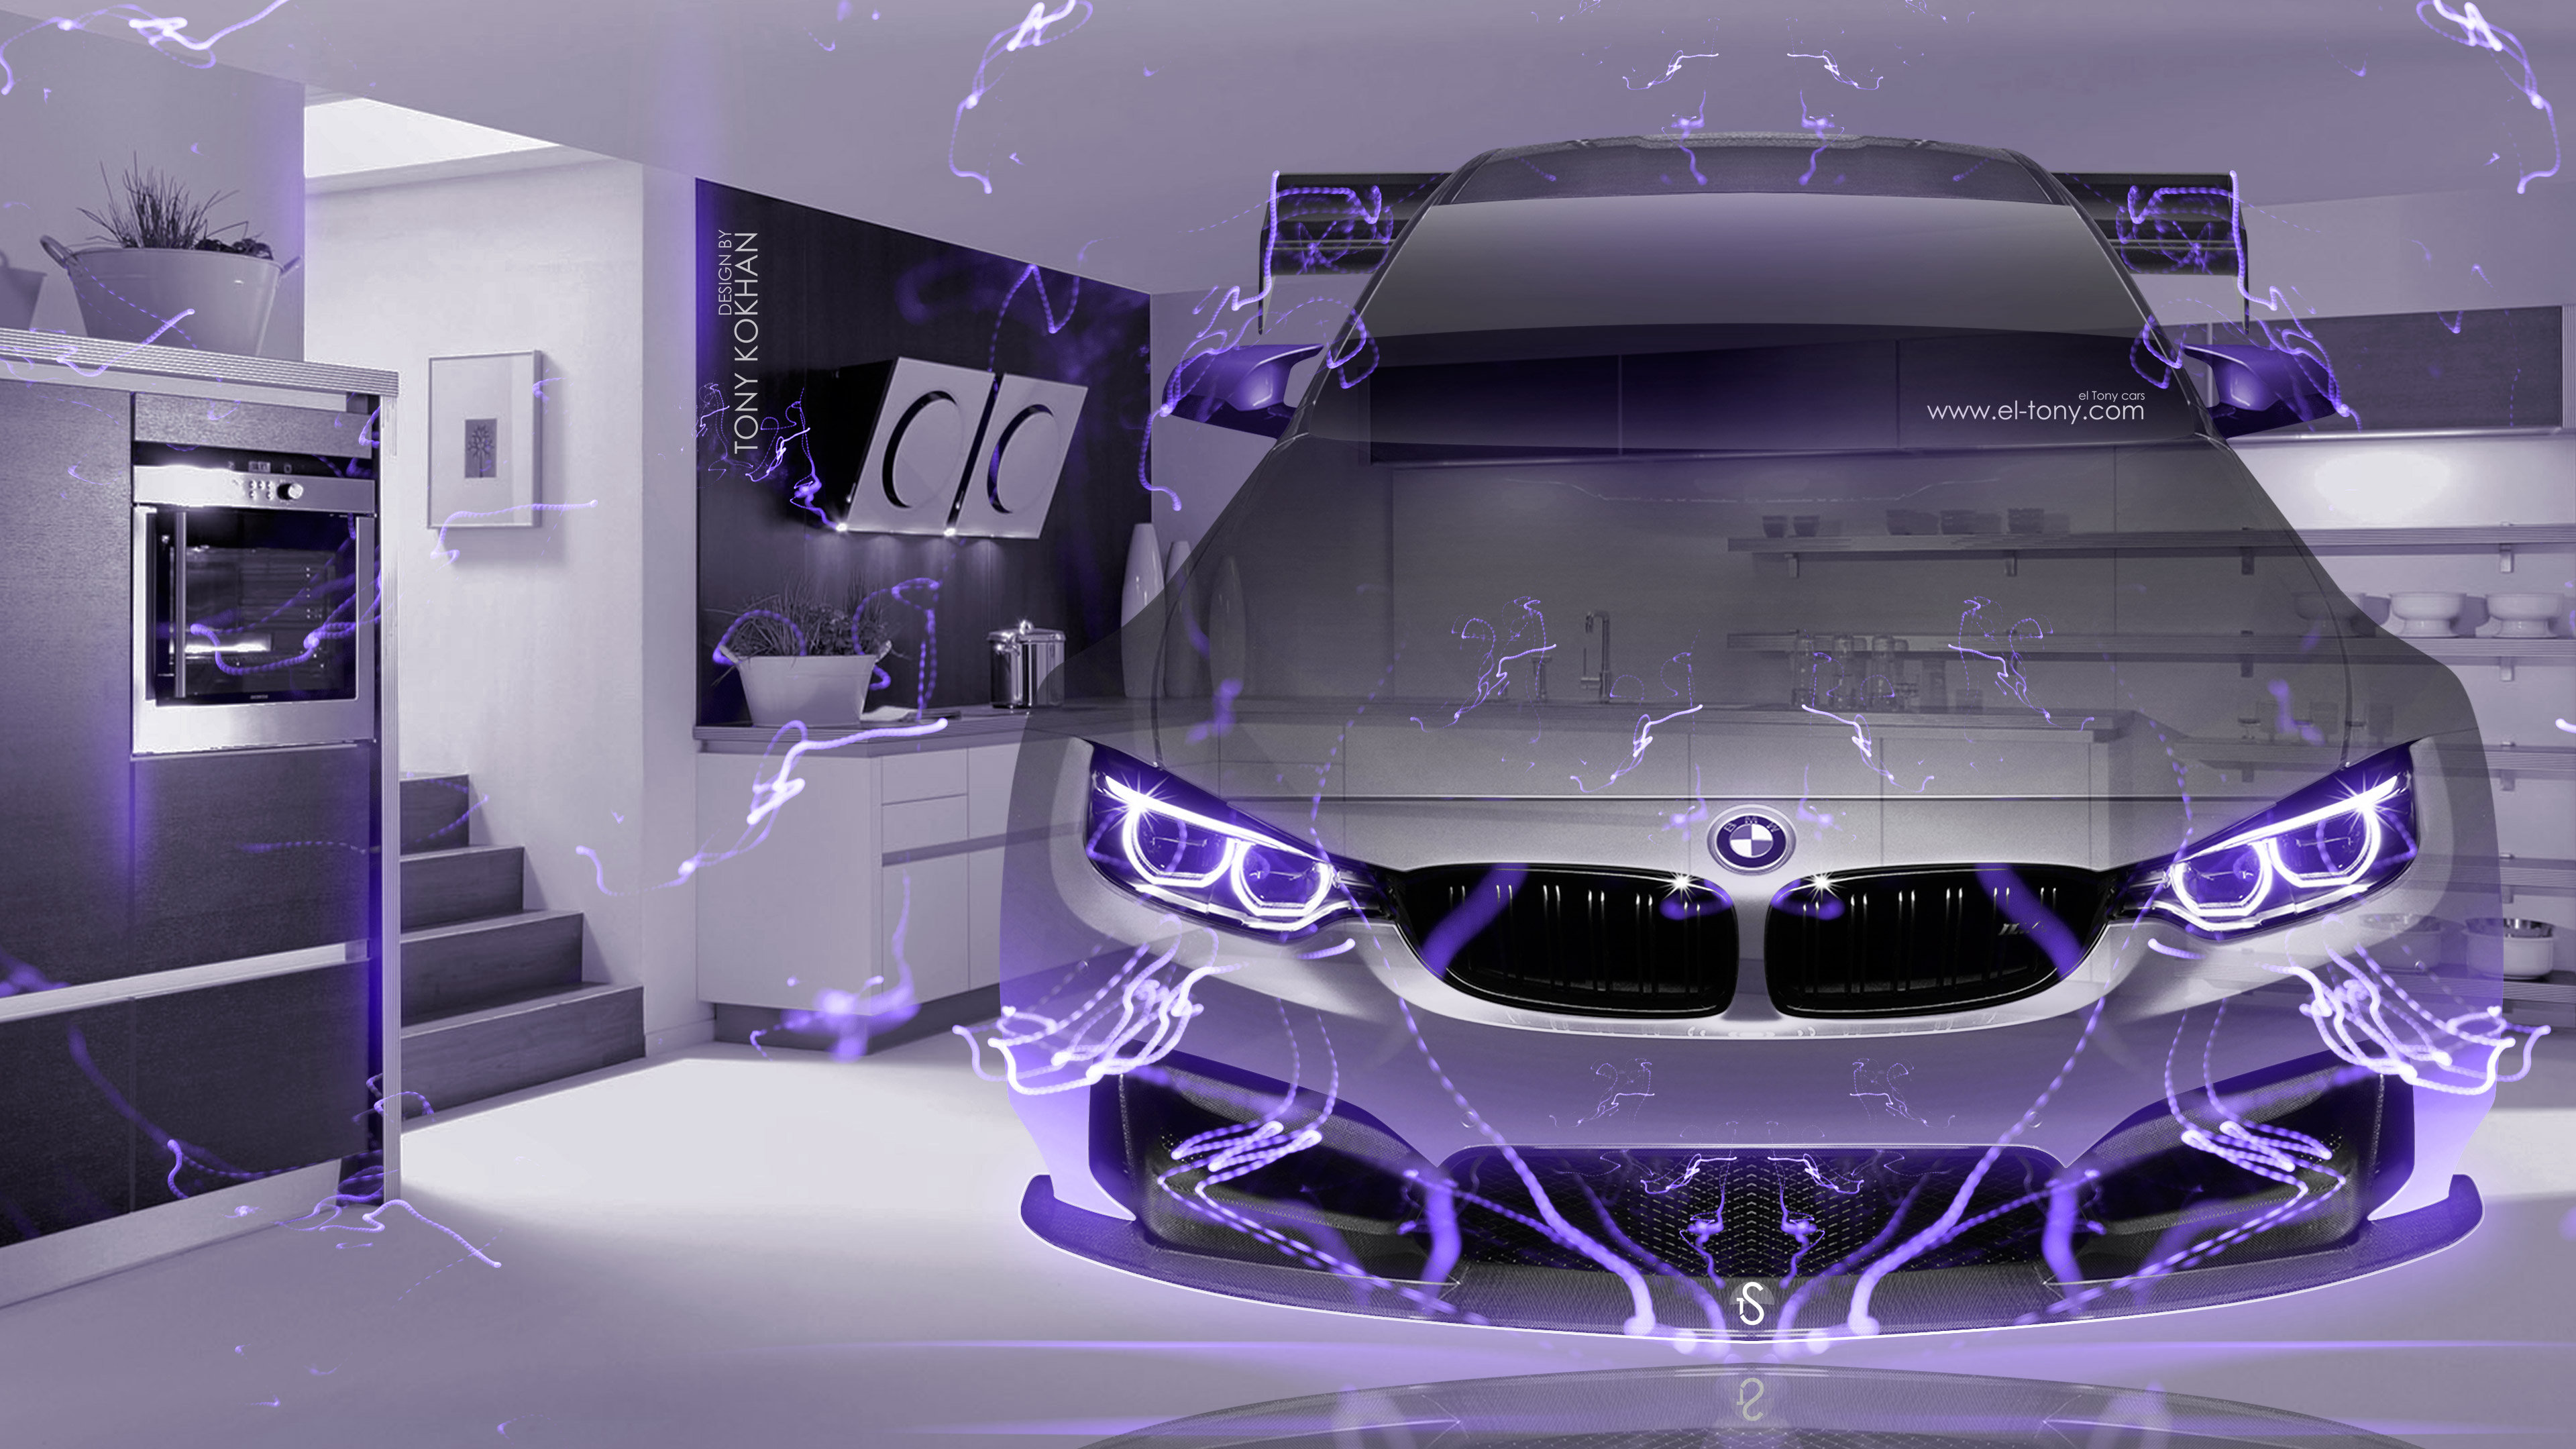 BMW-M4-Tuning-FrontUp-Fantasy-Crystal-Home-Fly-Energy-Car-2016-Violet-Neon-Effects-4K-Wallpapers-design-by-Tony-Kokhan-www.el-tony.com-image